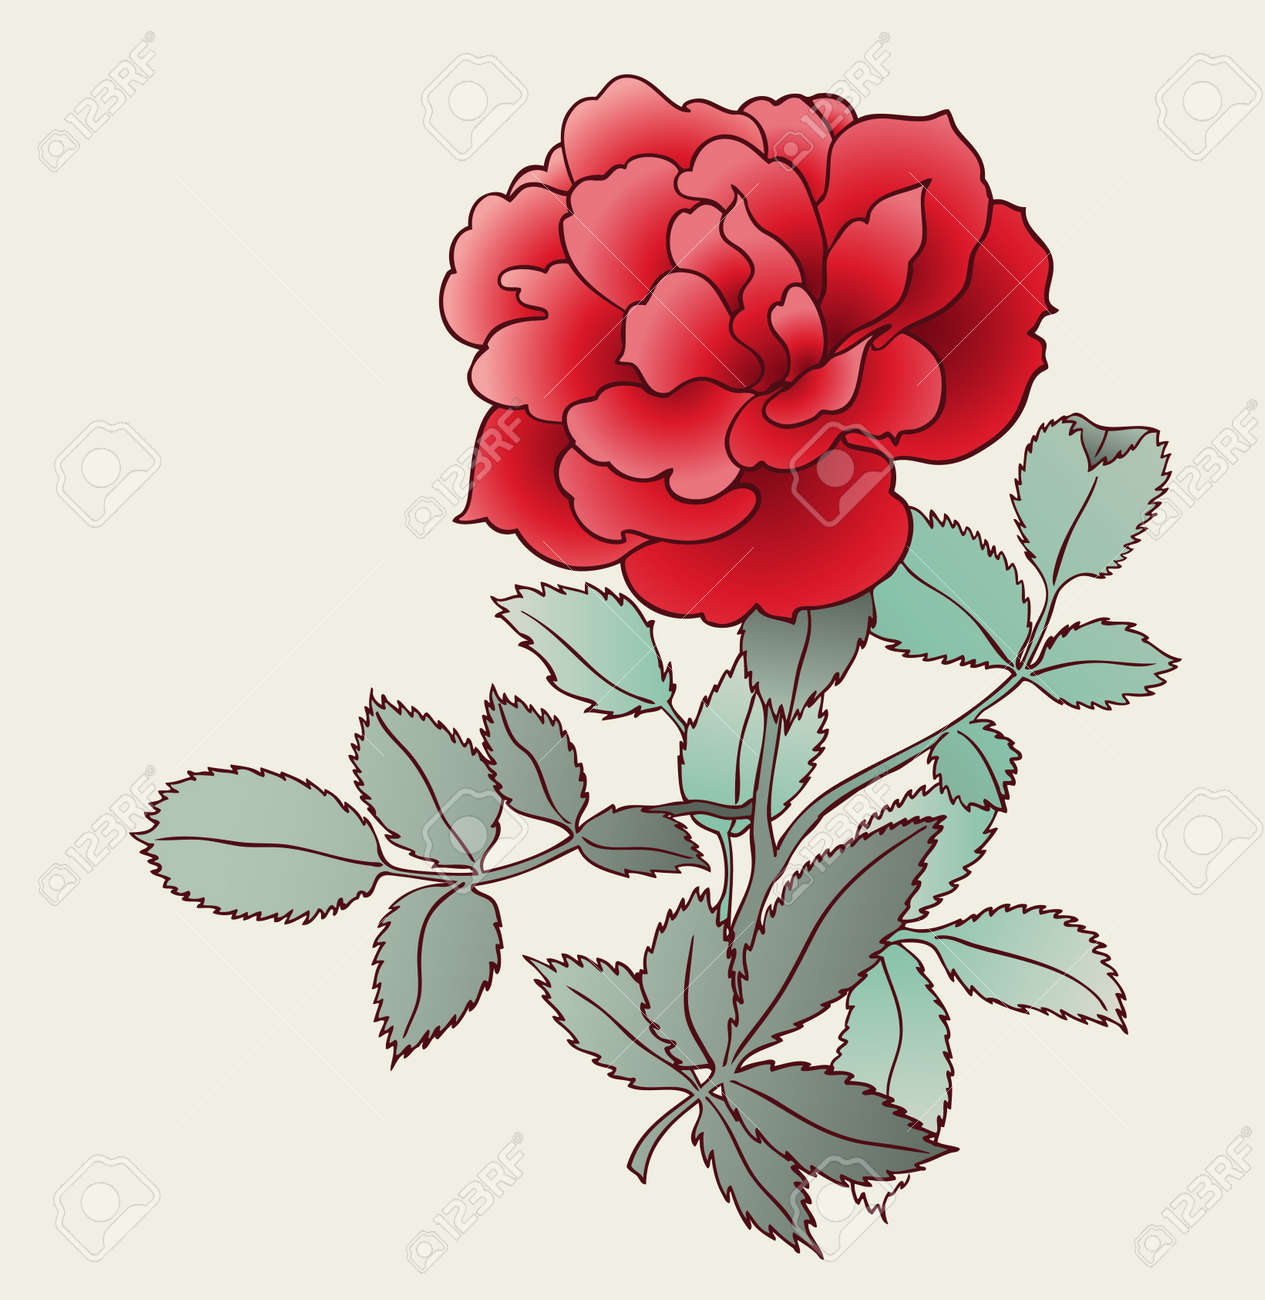 Rose Drawing Royalty Free Cliparts Vectors And Stock Illustration Image 7860180